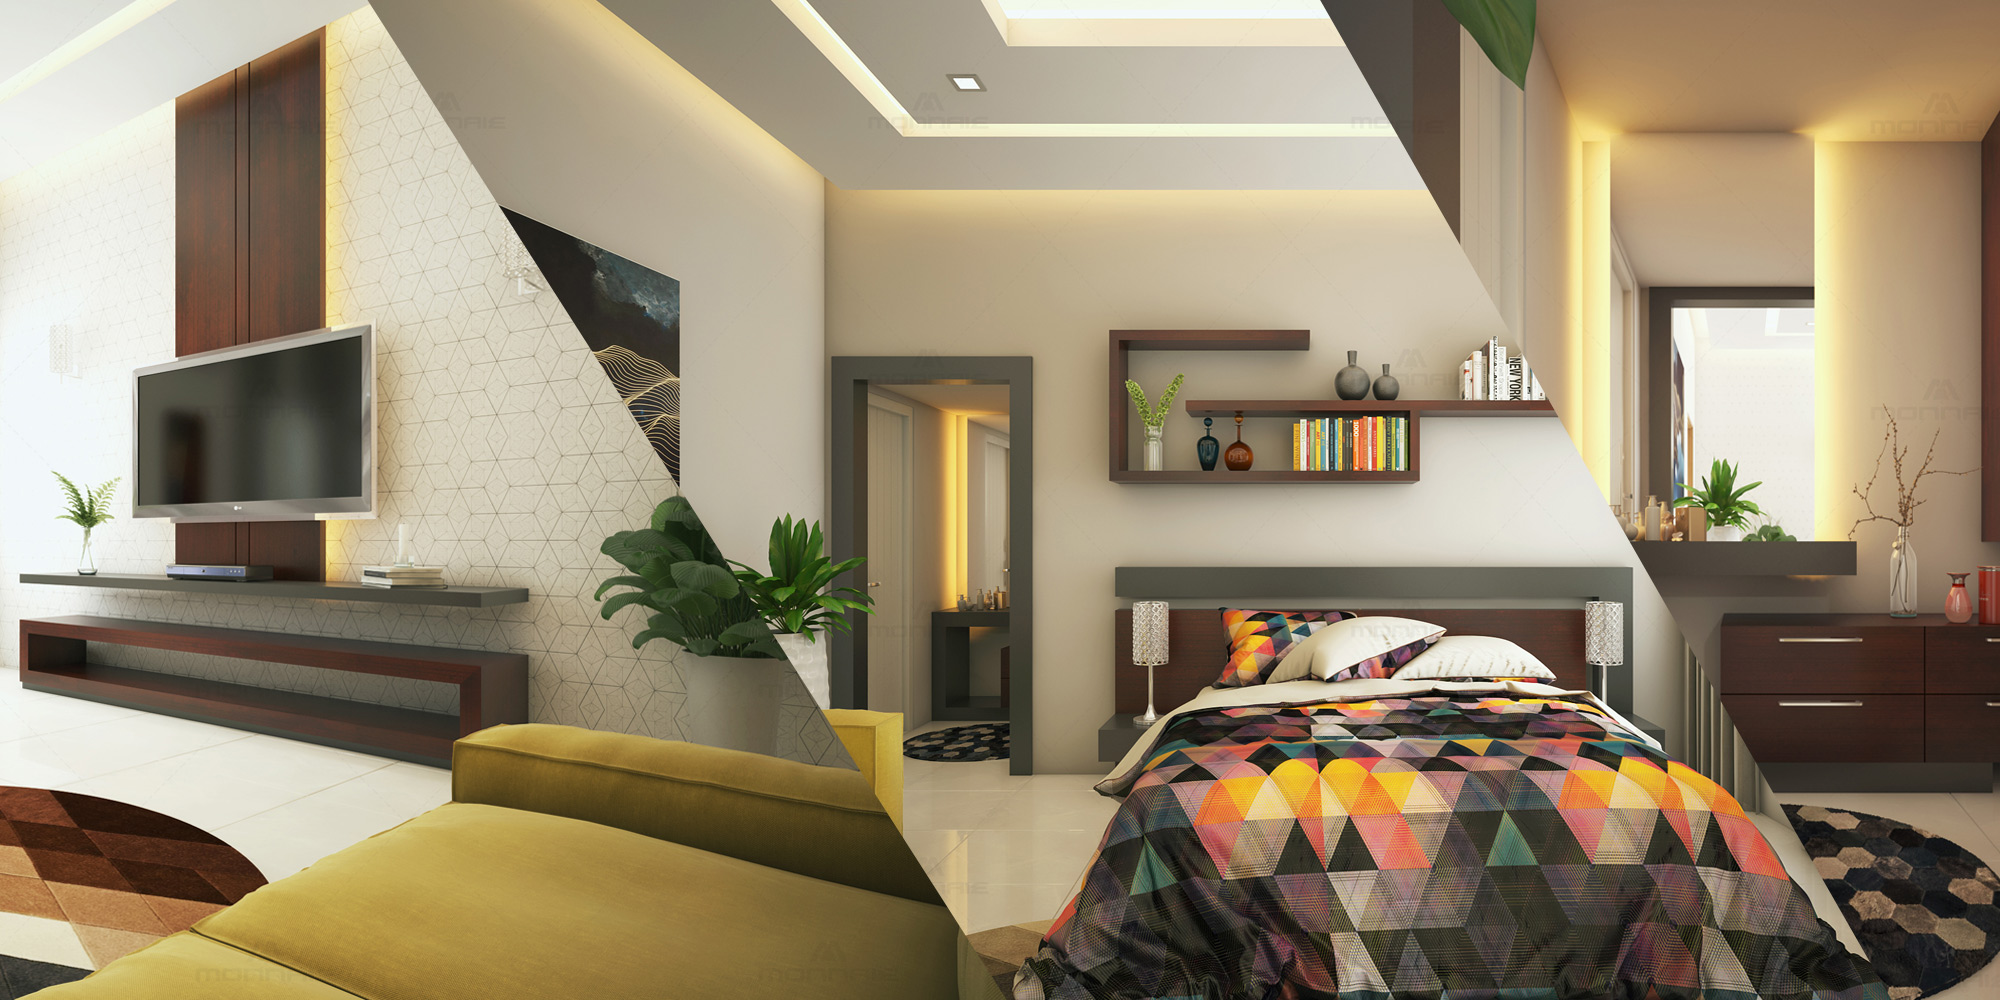 Home interior designers in Kerala - Monnaie Architects & Interiors in kerala